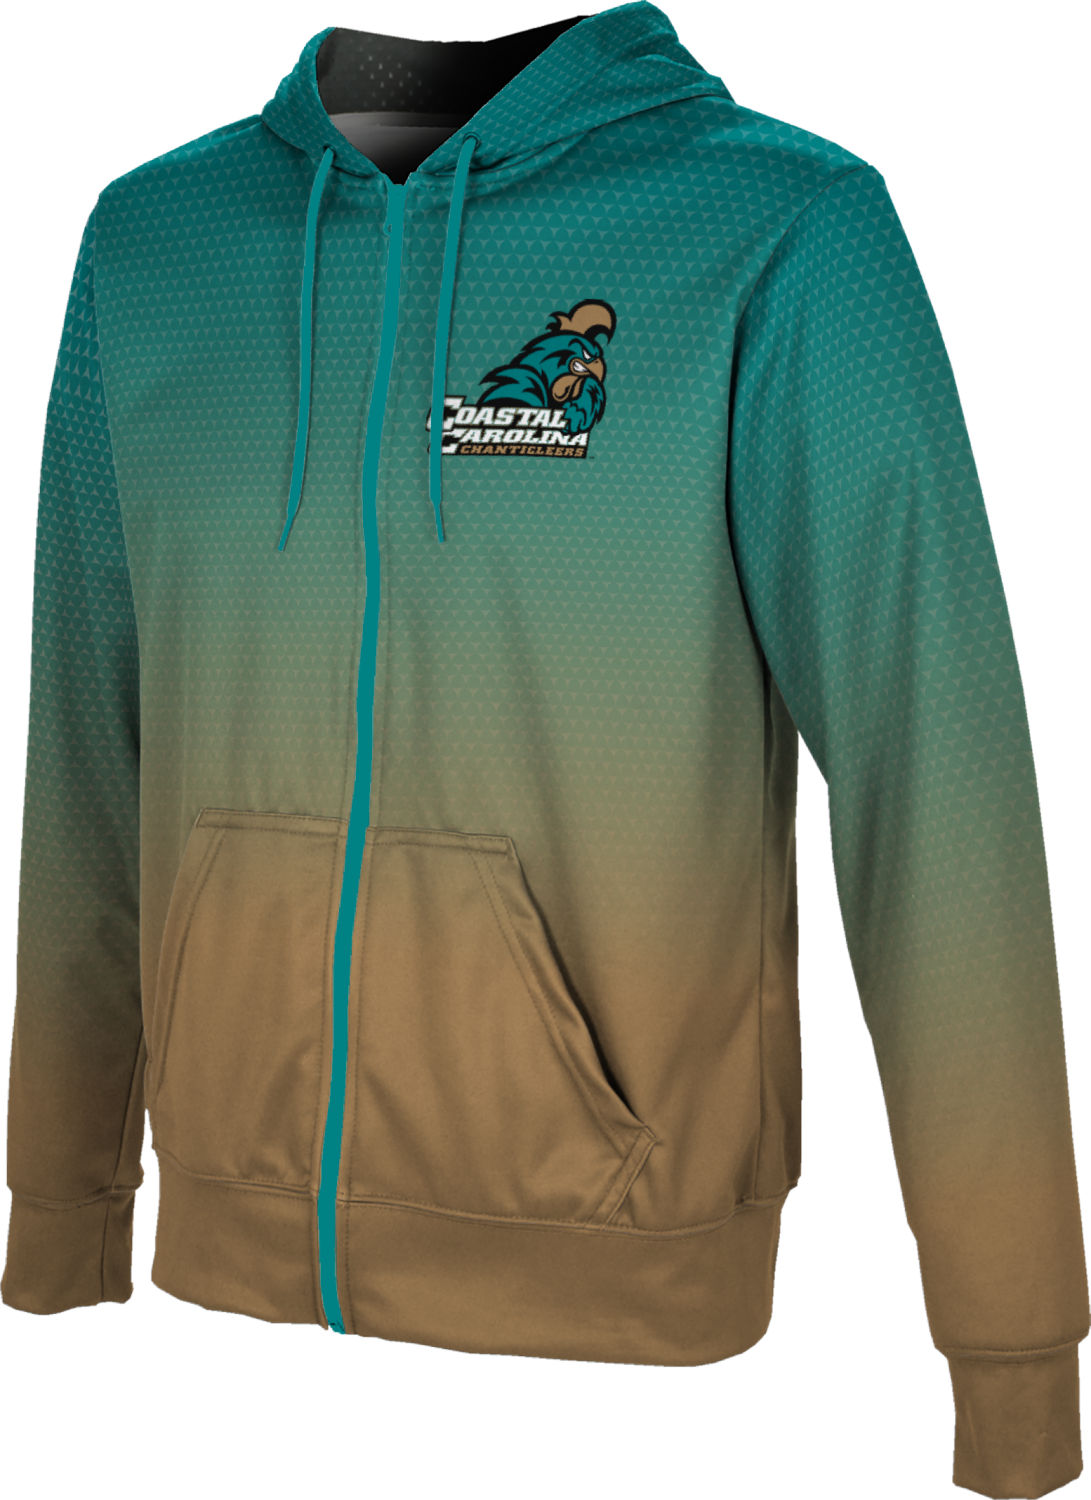 ProSphere Boys' Coastal Carolina University Zoom Fullzip Hoodie